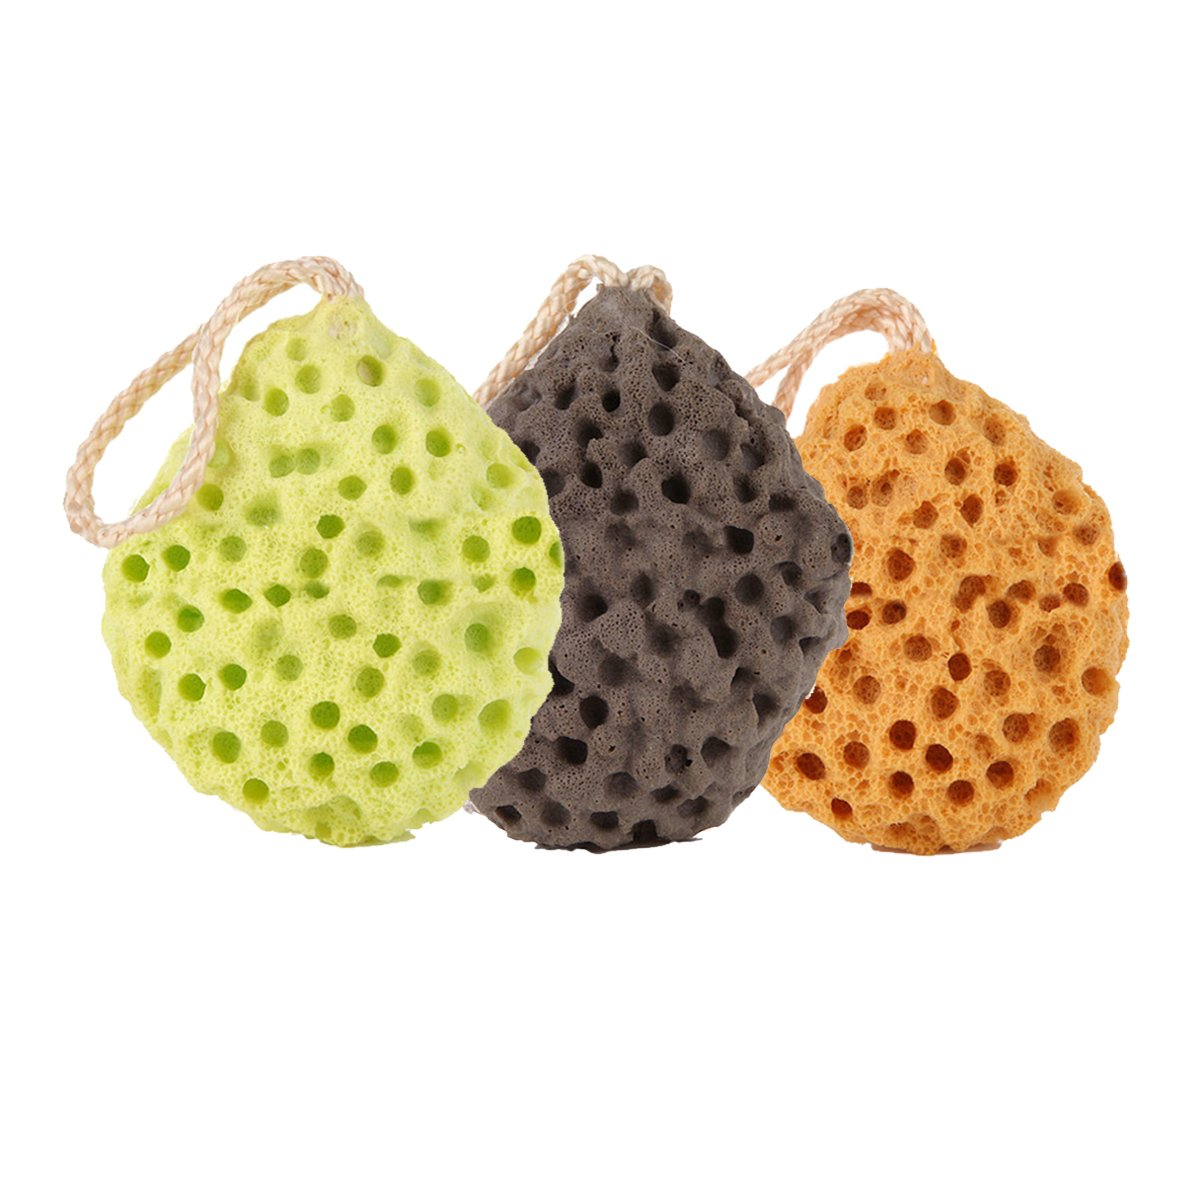 OWNFUN Set of 3 Sea Sponge Pouf Bath Shower Ball Cleaning Baby Face Washing